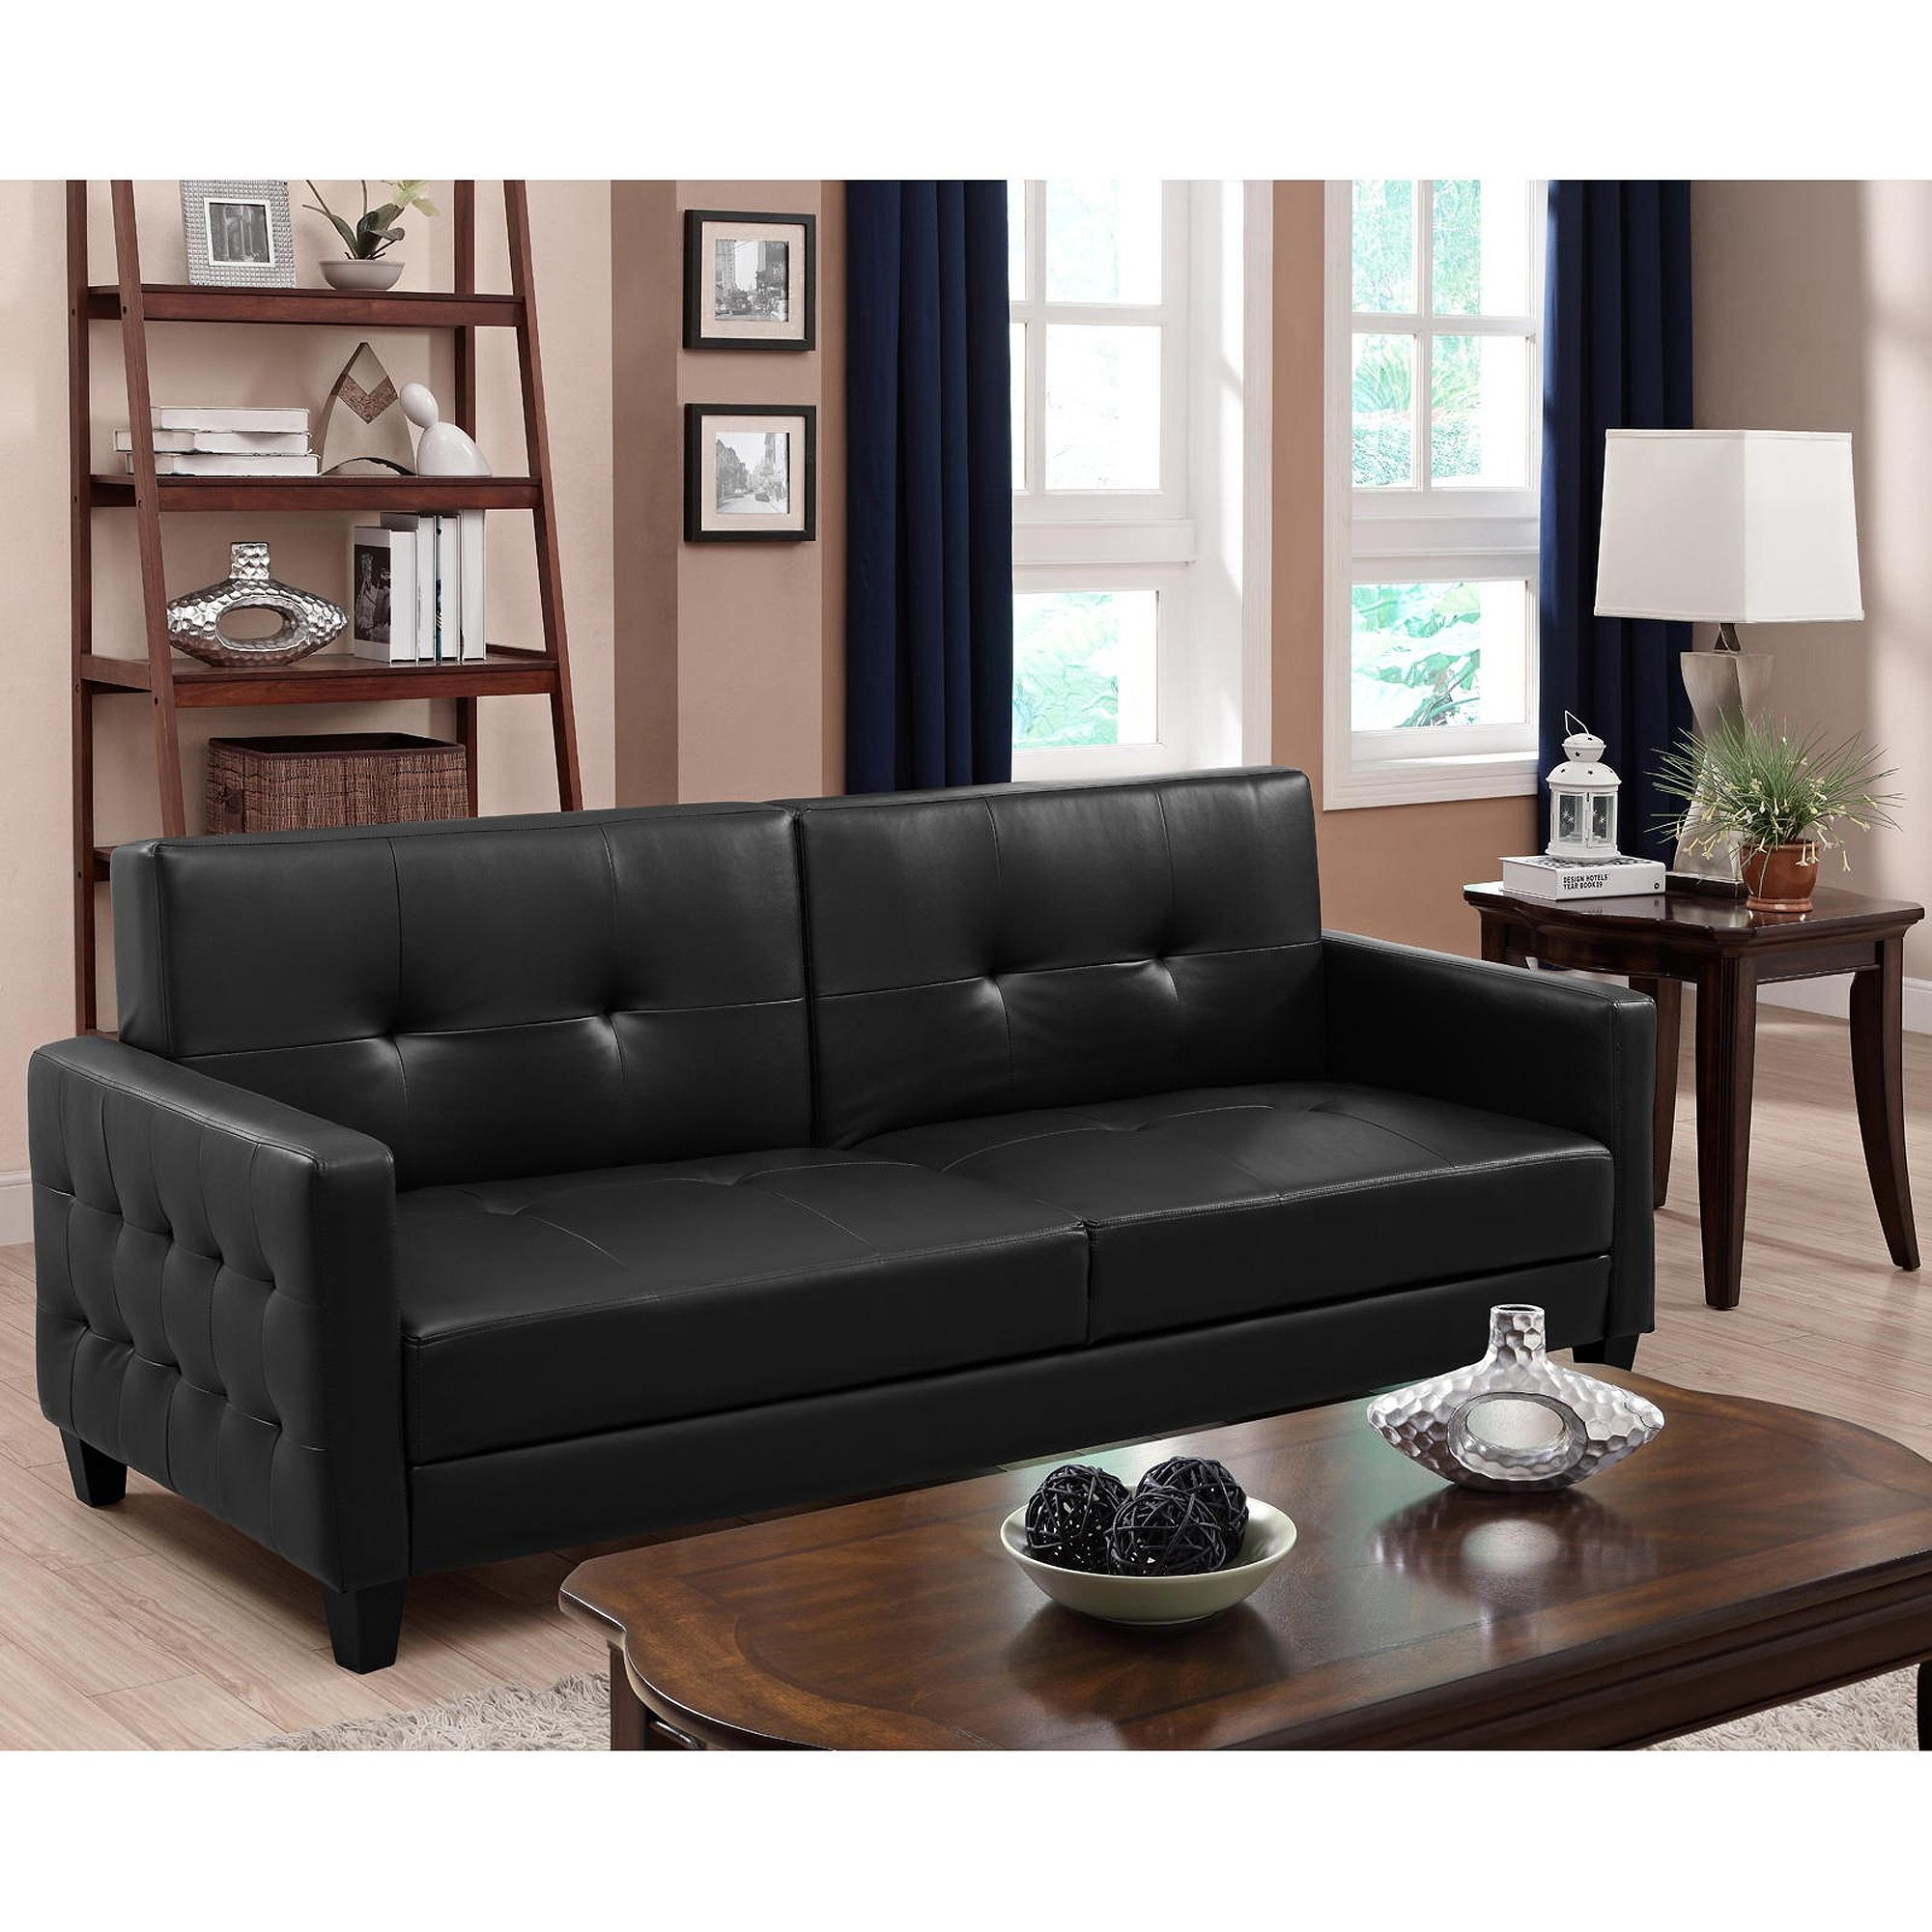 Atherton Home Manhattan Convertible Futon Sofa Bed And Lounger In Faux Leather Futon Sofas (Image 1 of 20)